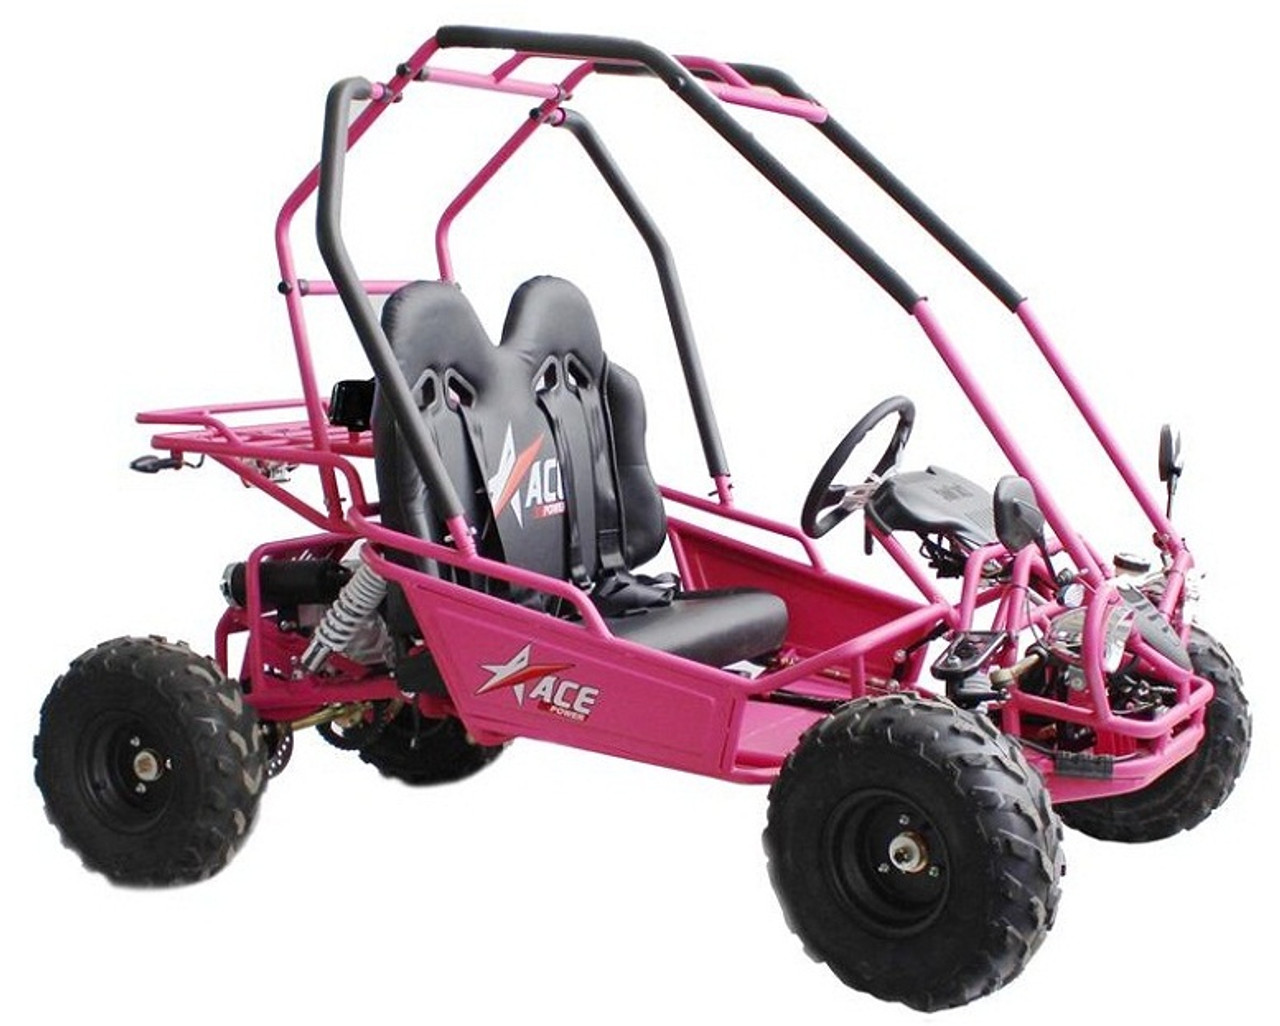 ACE 125 Kids Go Kart, Electric Start, Automatic with Reverse